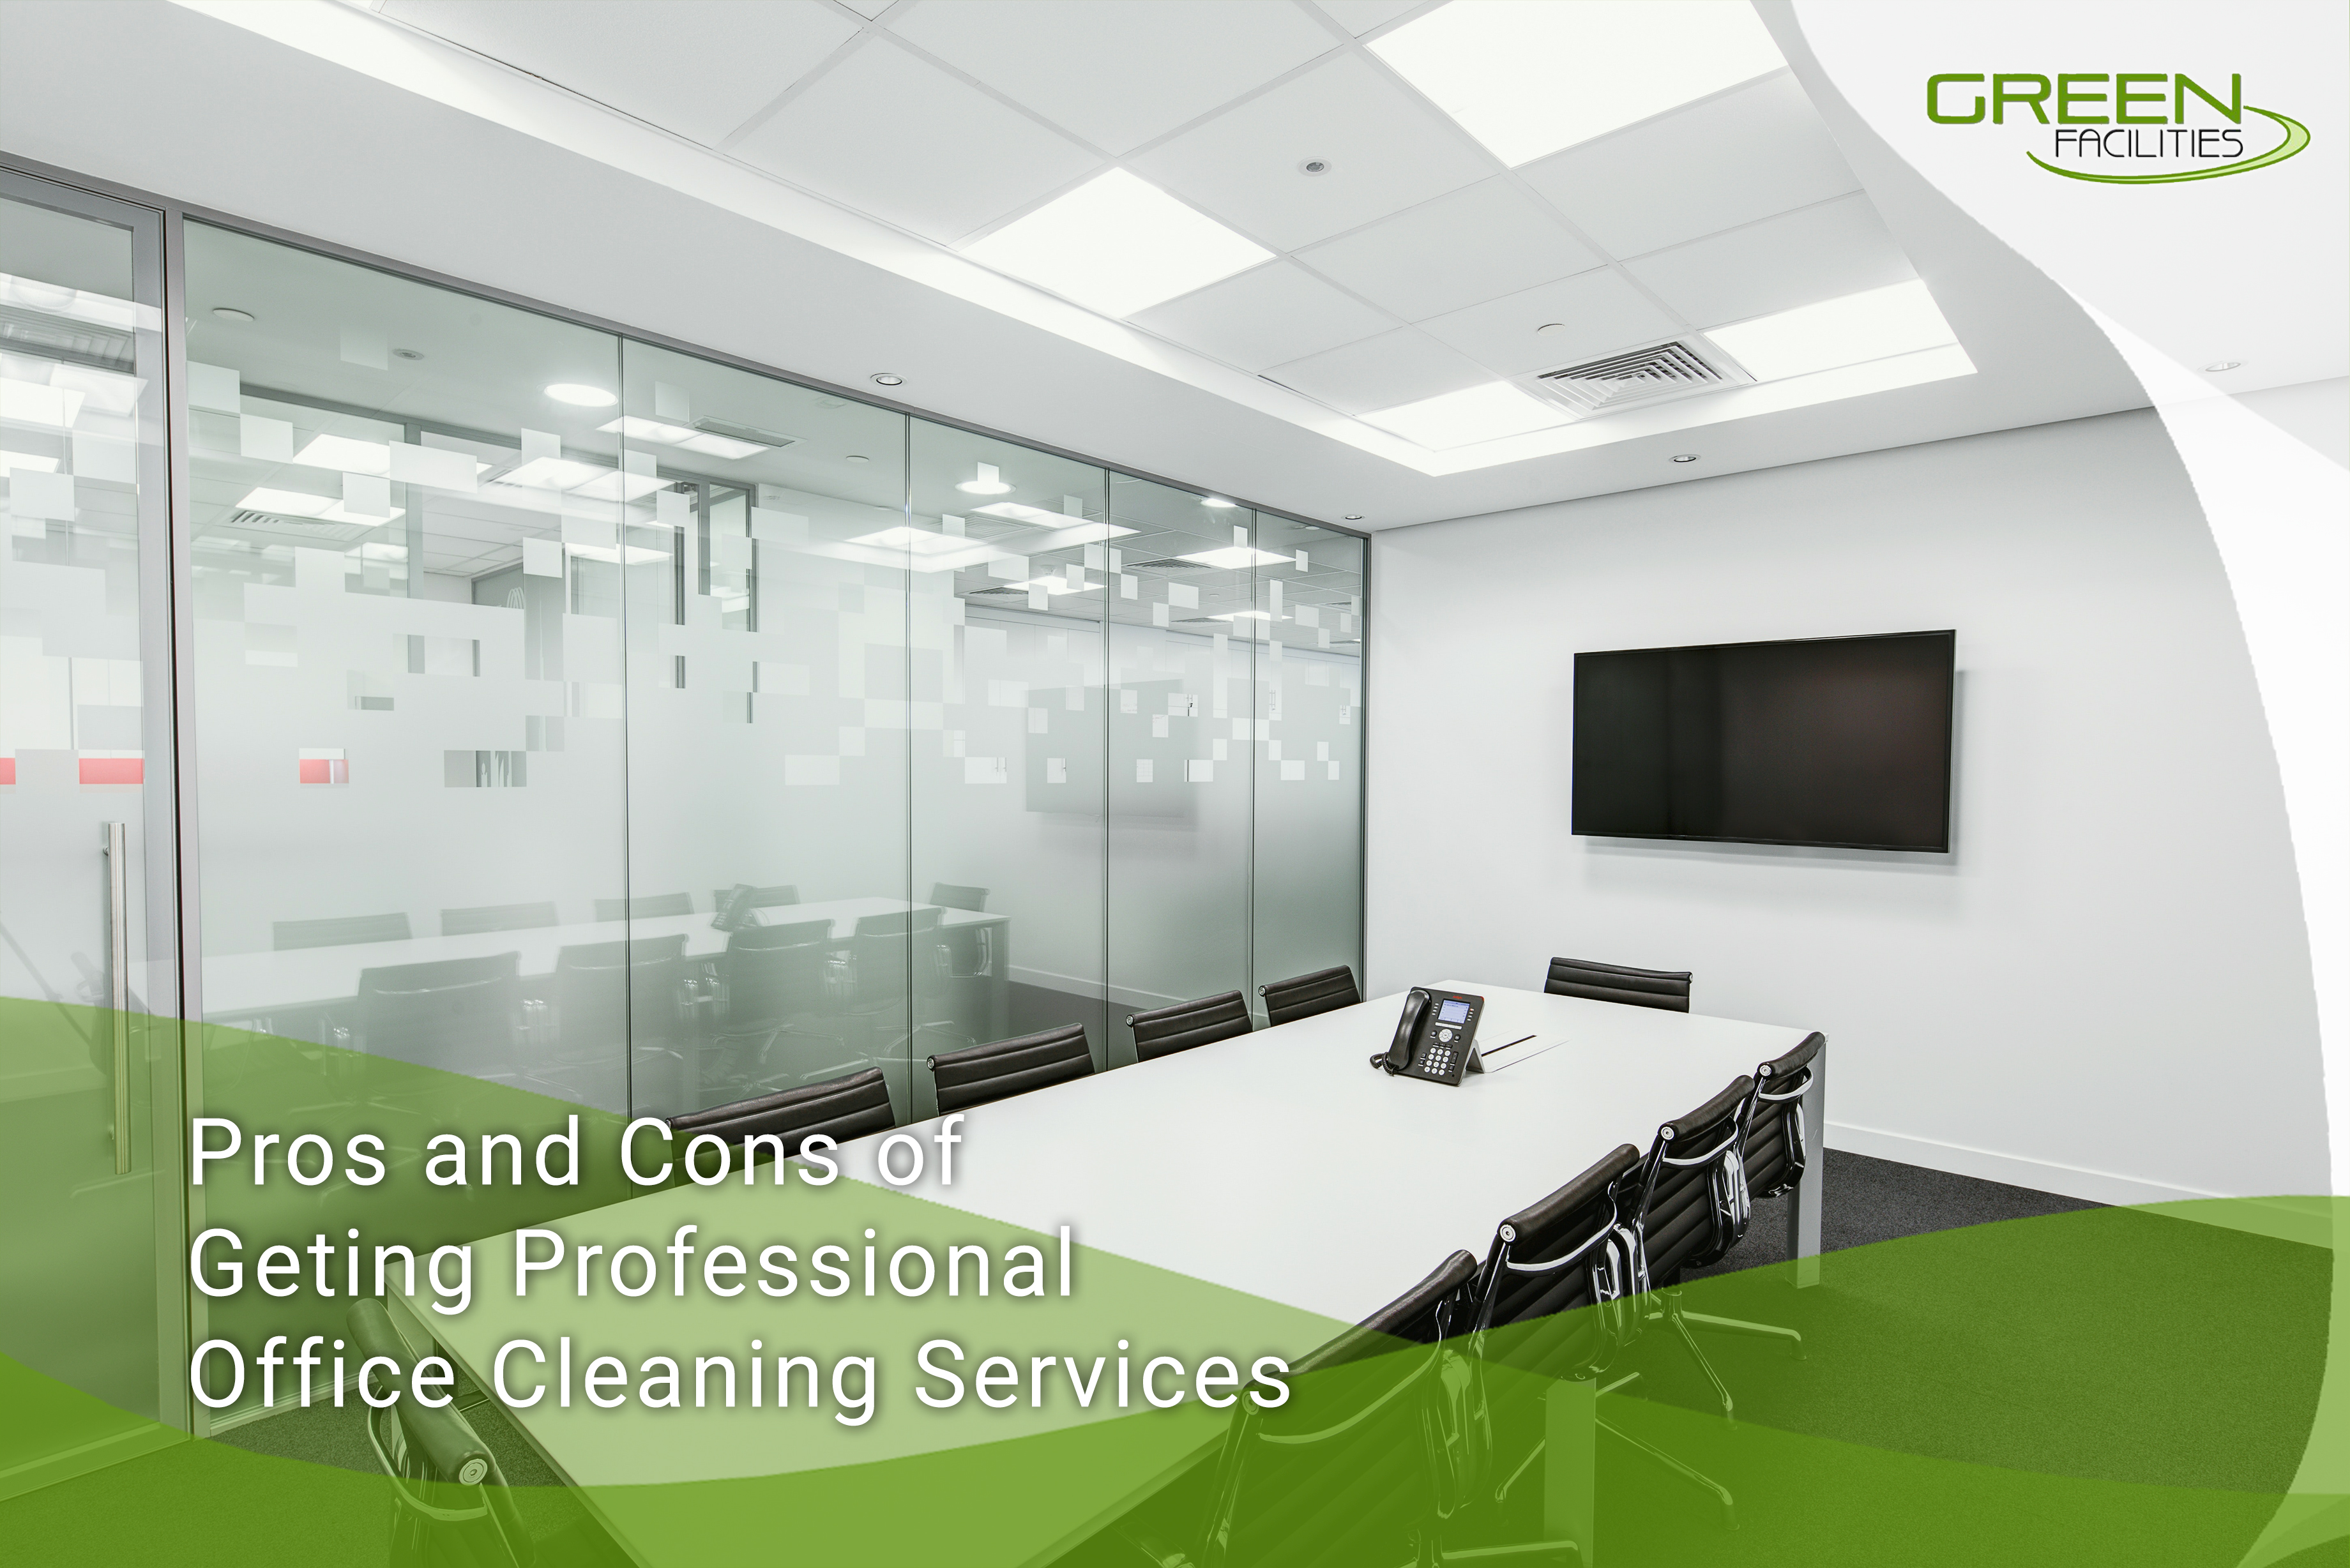 Pros and Cons of Getting Professional Office Cleaning Service